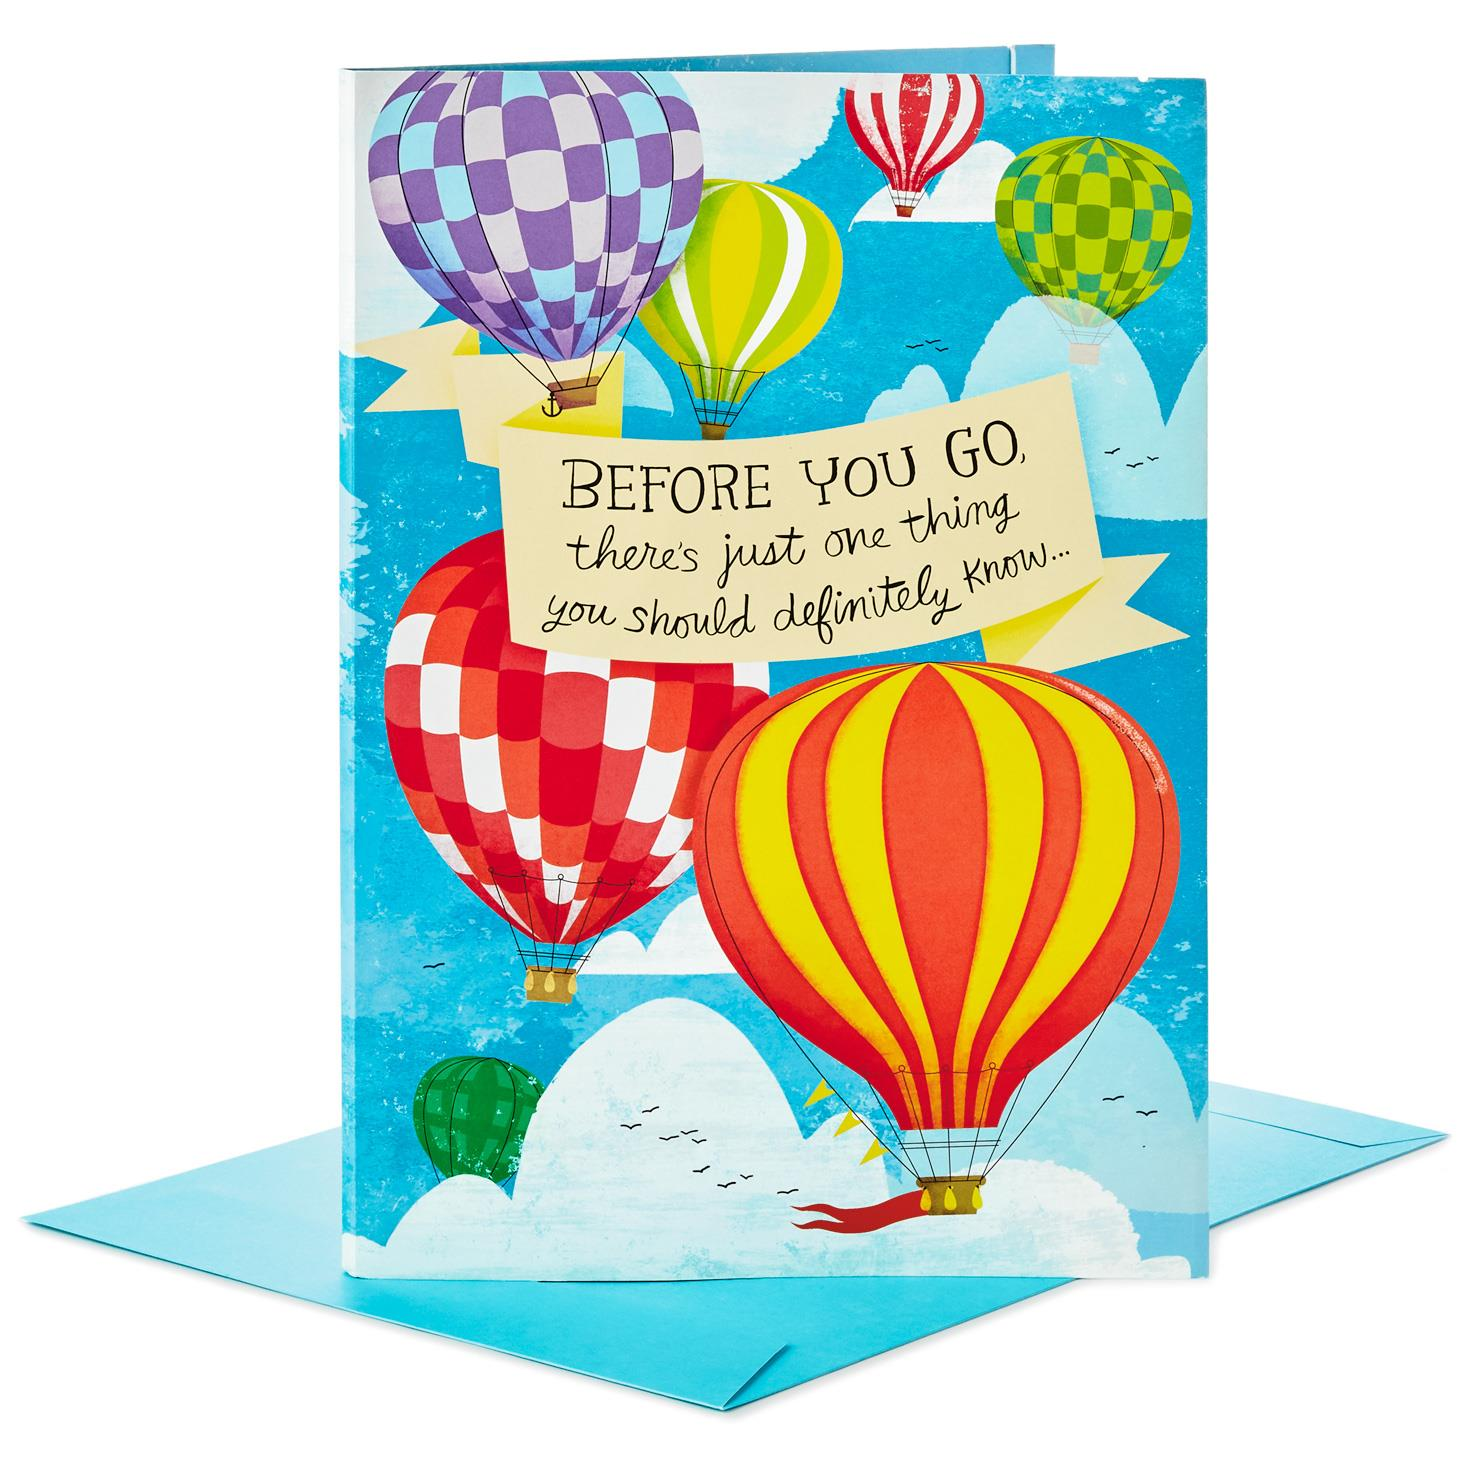 You'll Be Missed Hot Air Balloon Decoration Jumbo Goodbye ...